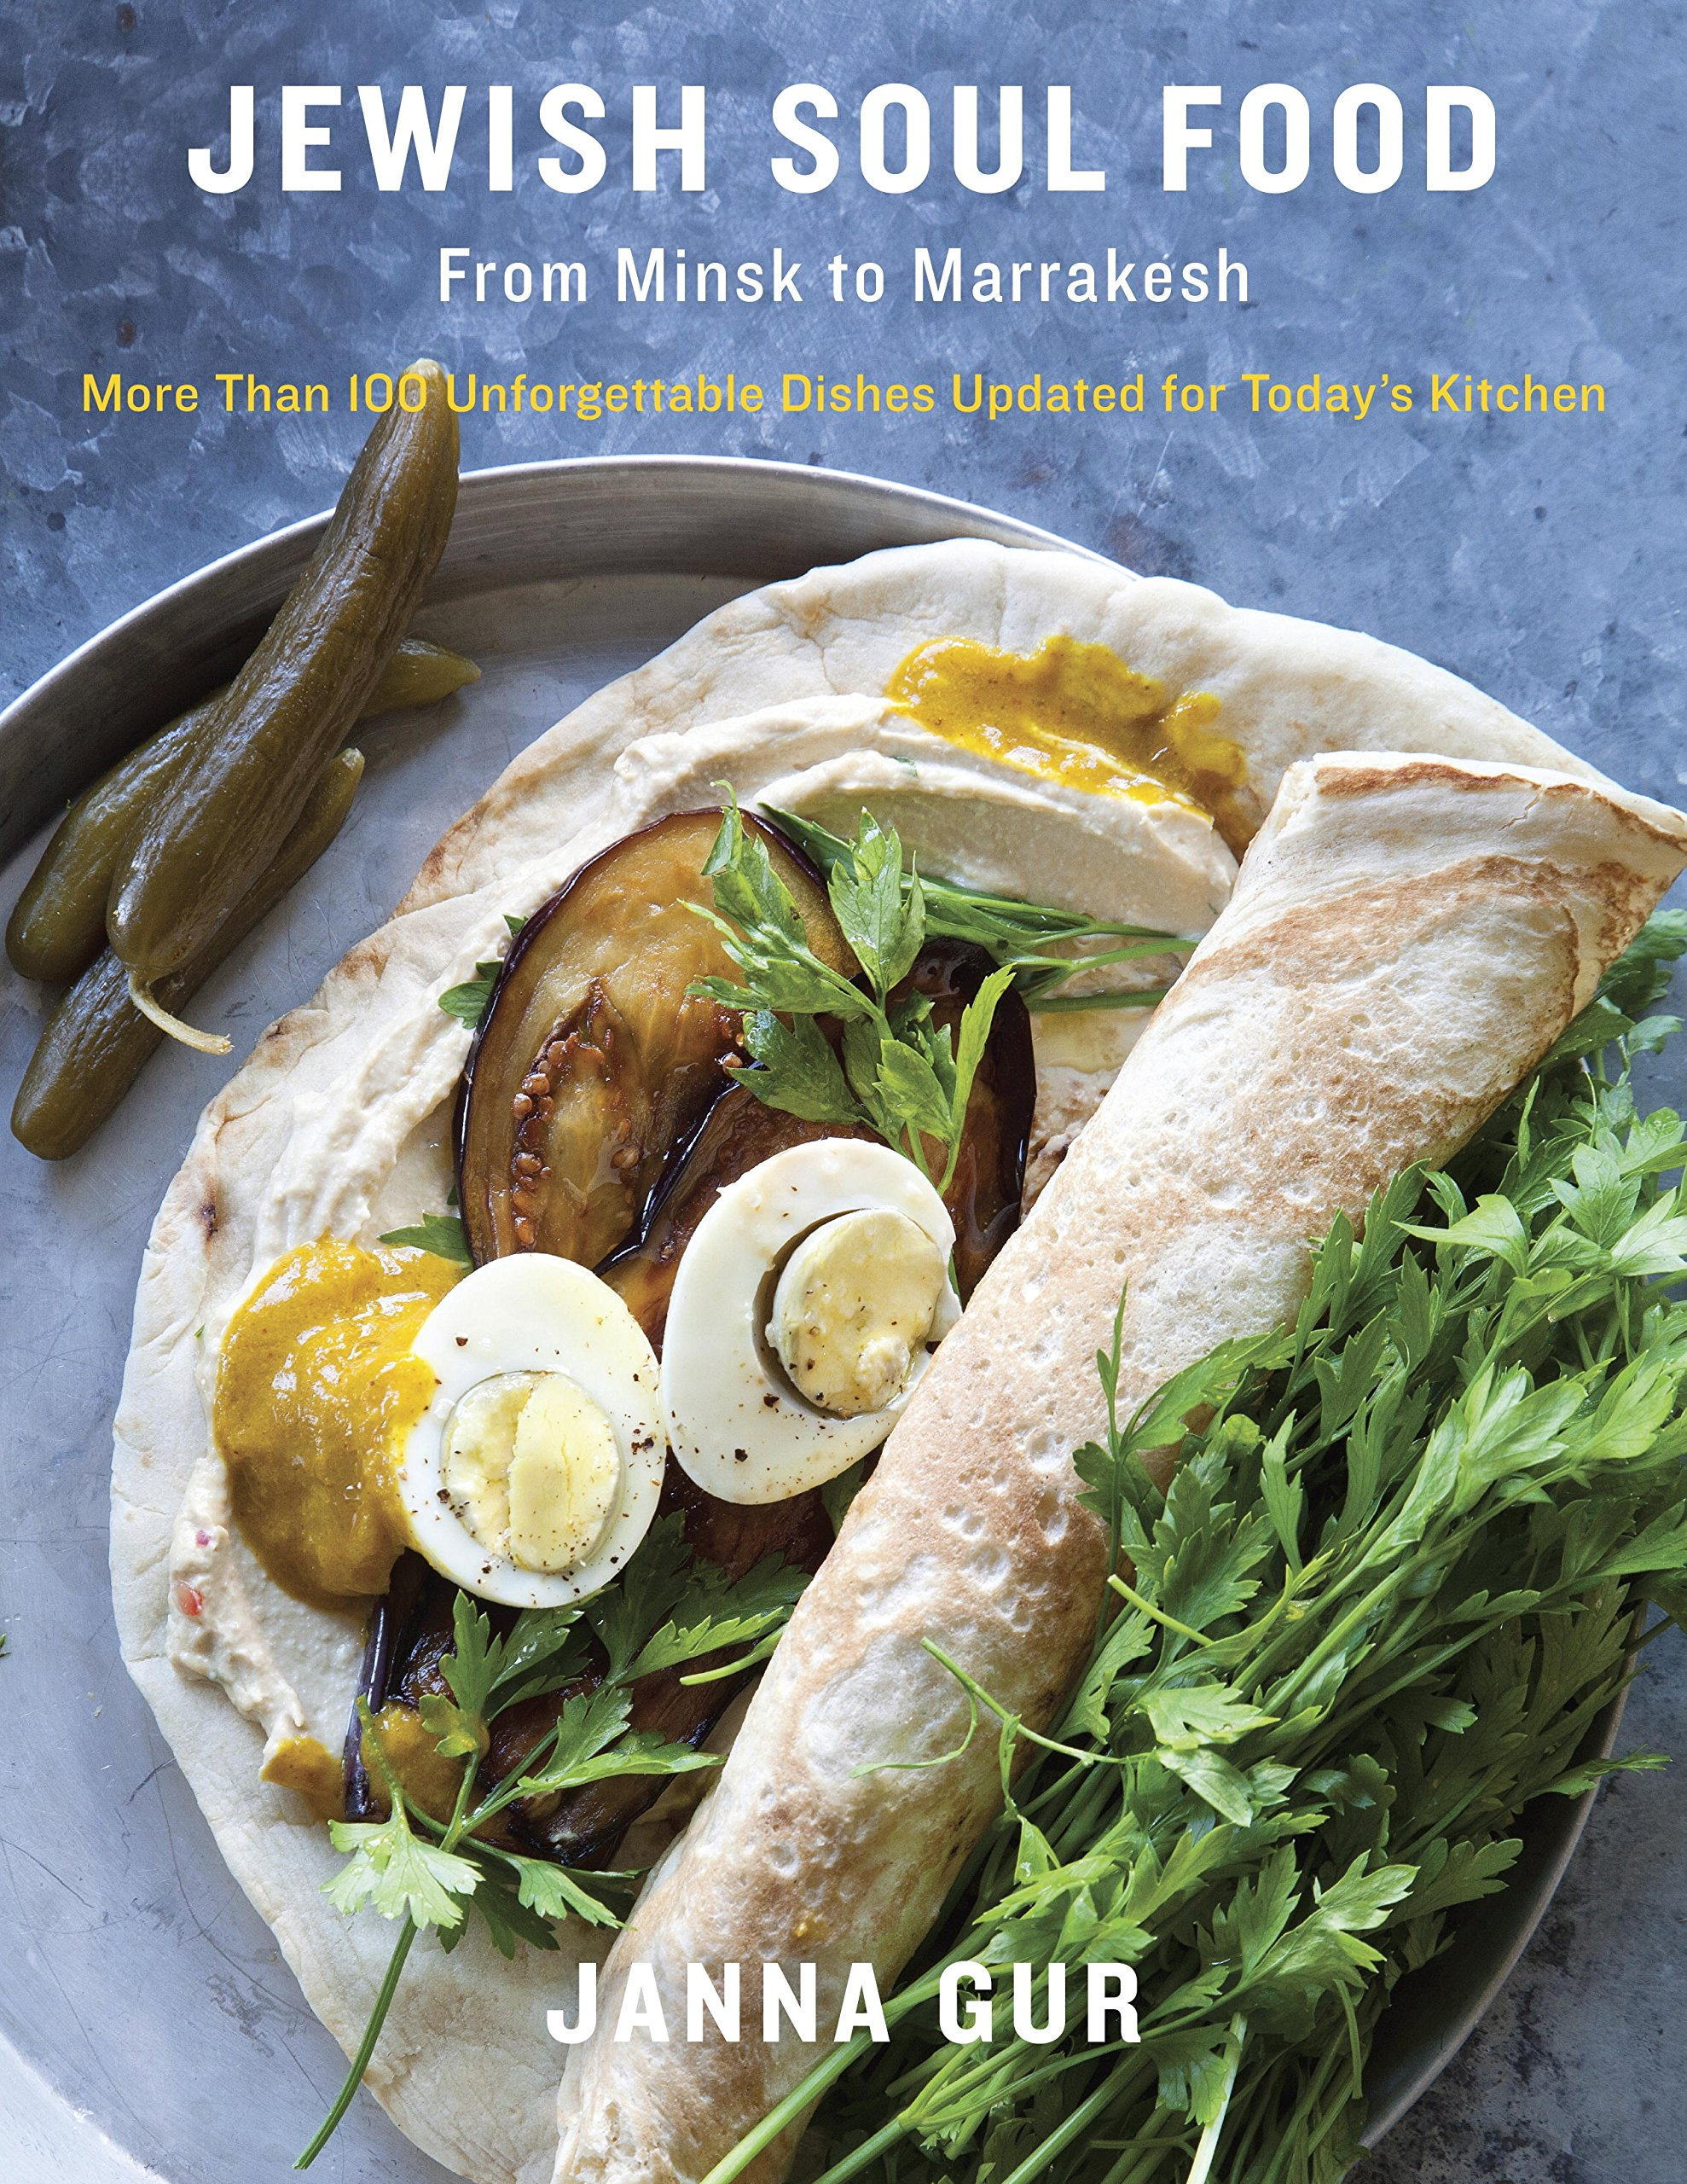 jewish soul food from minsk to marrakesh more than 100 dishes updated for todayu0027s kitchen janna gur amazoncom books